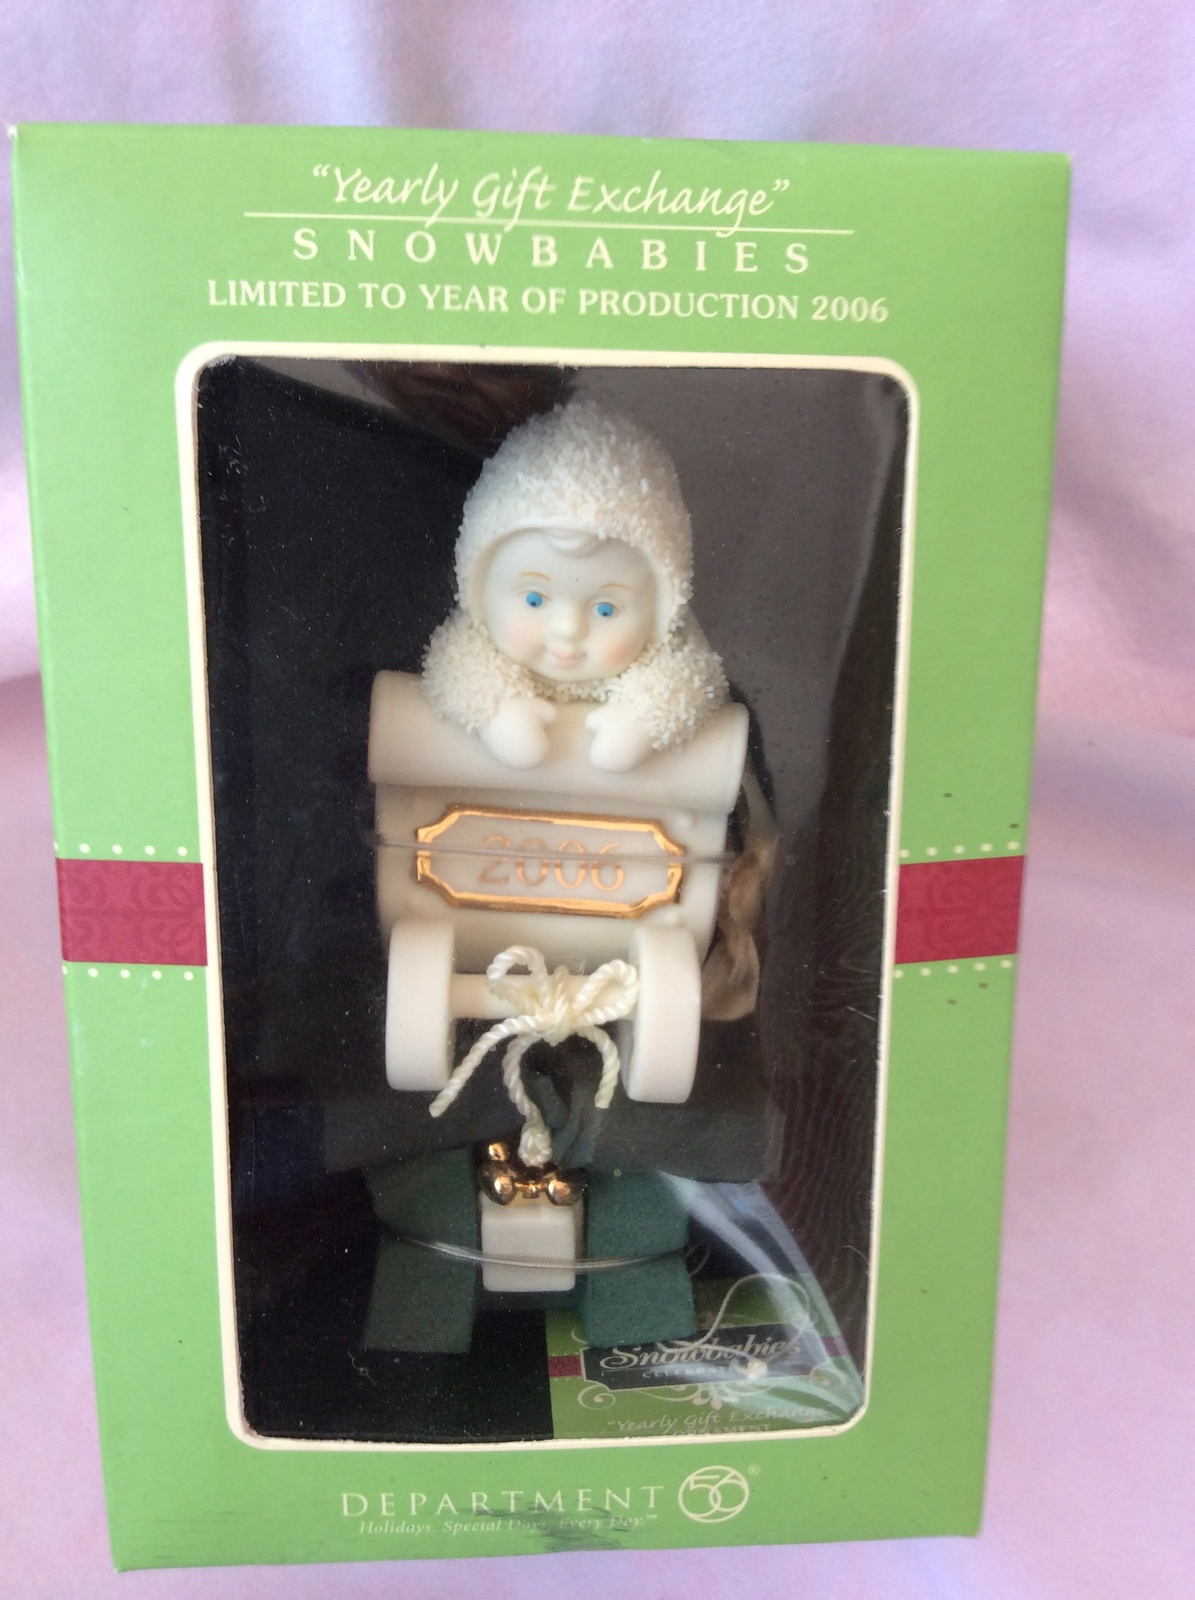 2006 China Bisque Porcelain Snow Baby Ornament In Box